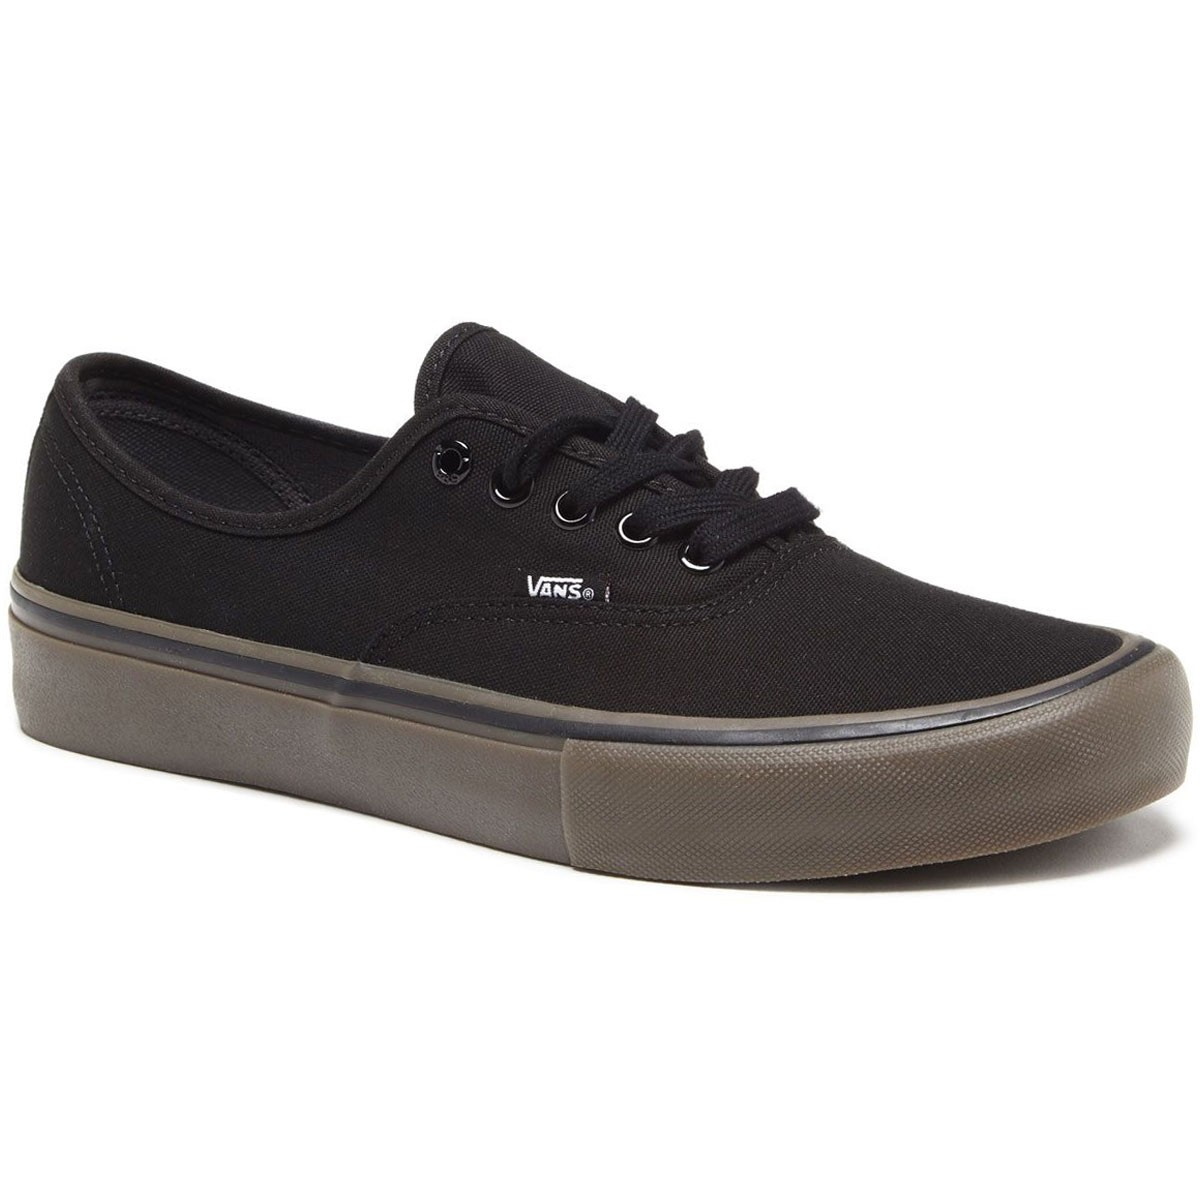 8f67e7726fed0c Vans Authentic Pro Shoes - Black Black - 10